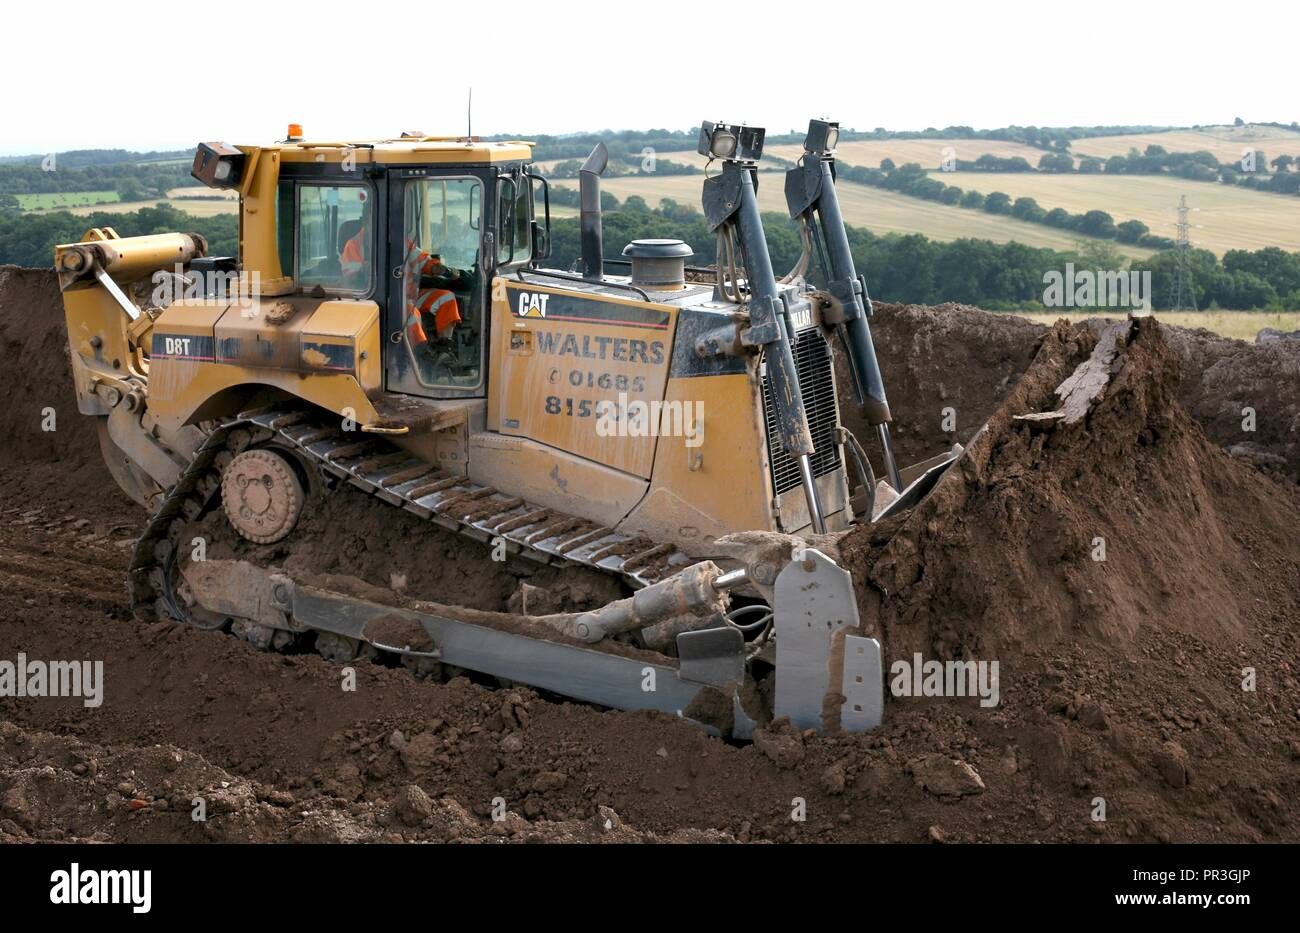 Cat Bulldozer Stock Photos & Cat Bulldozer Stock Images - Alamy